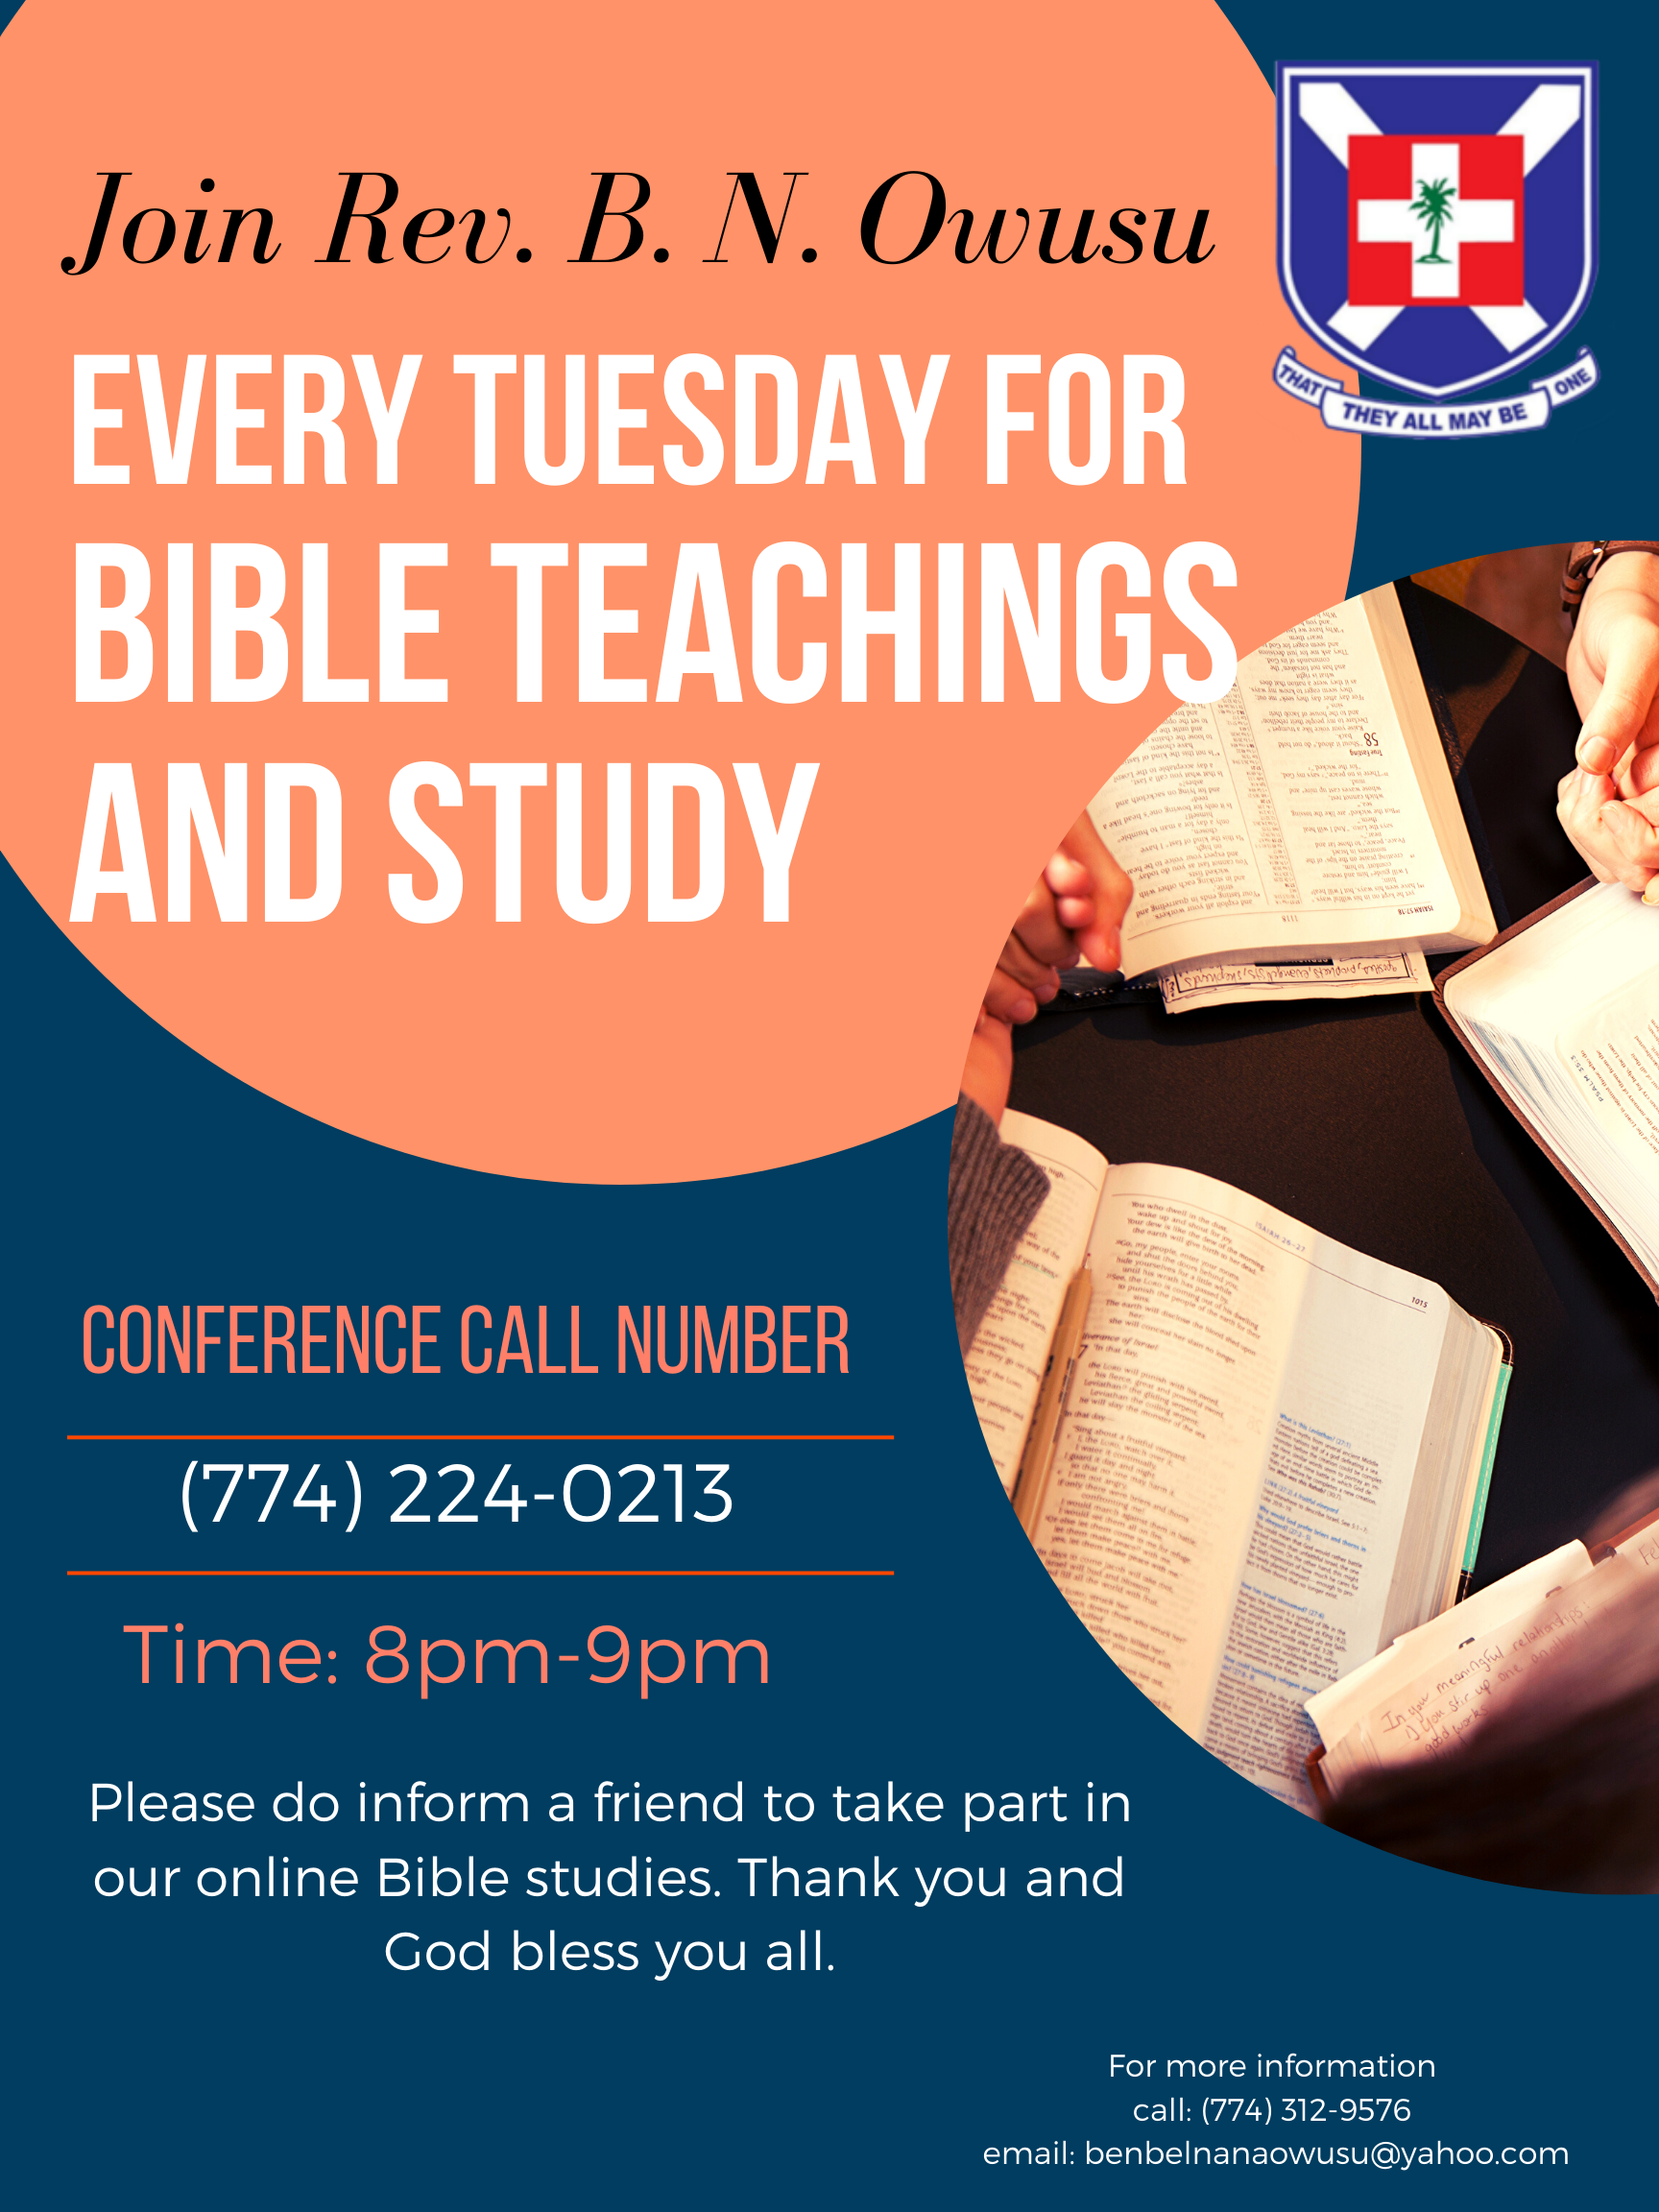 Tuesday's Bible Teachings and Study with Rev. B.N. Owusu